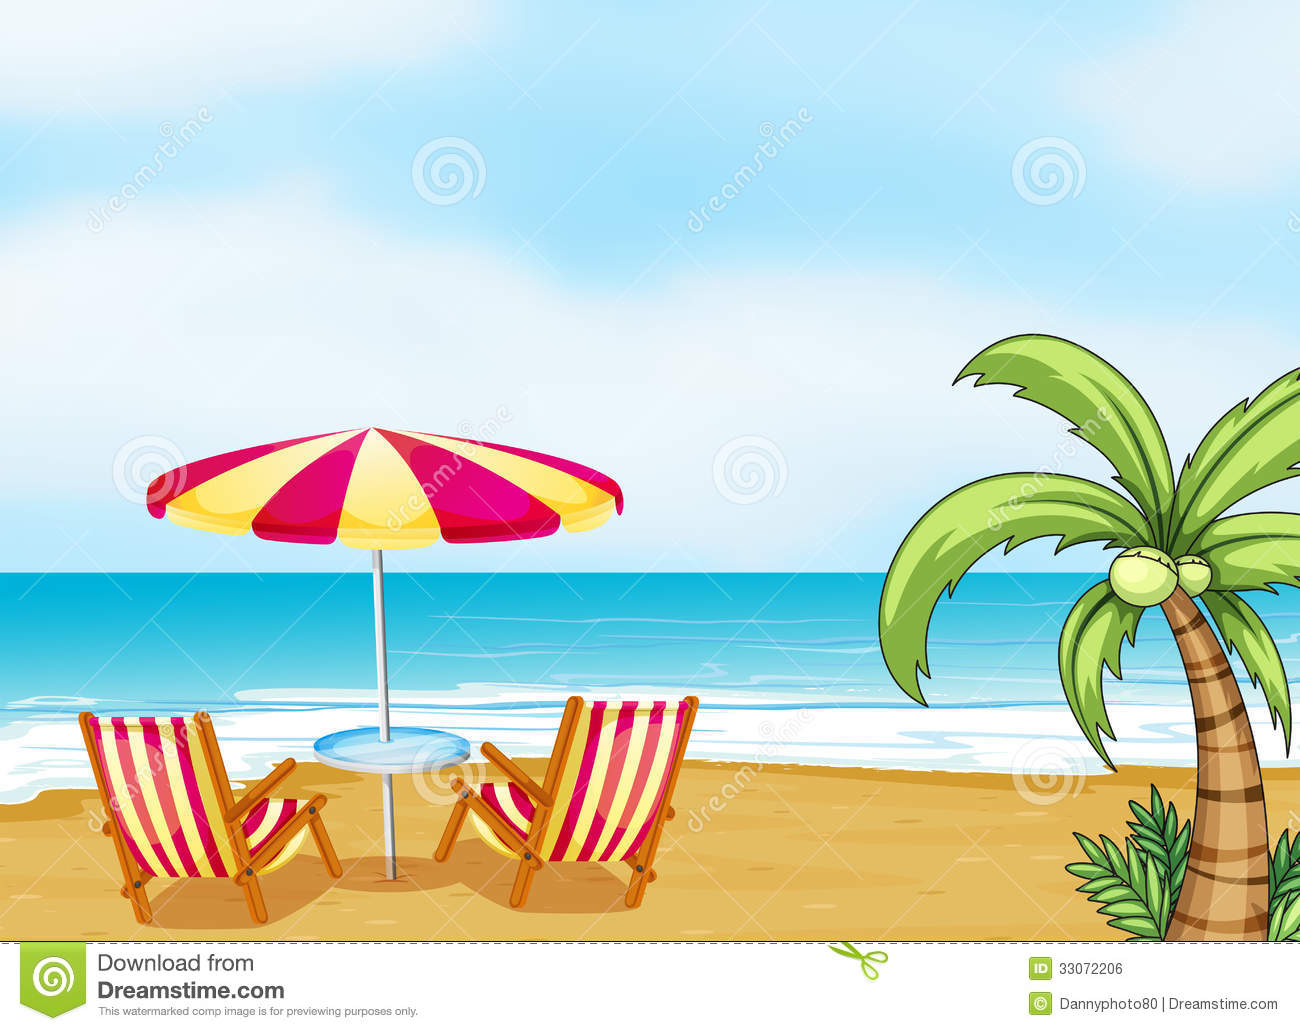 the beach with an umbrella and chairs stock vector - illustration of